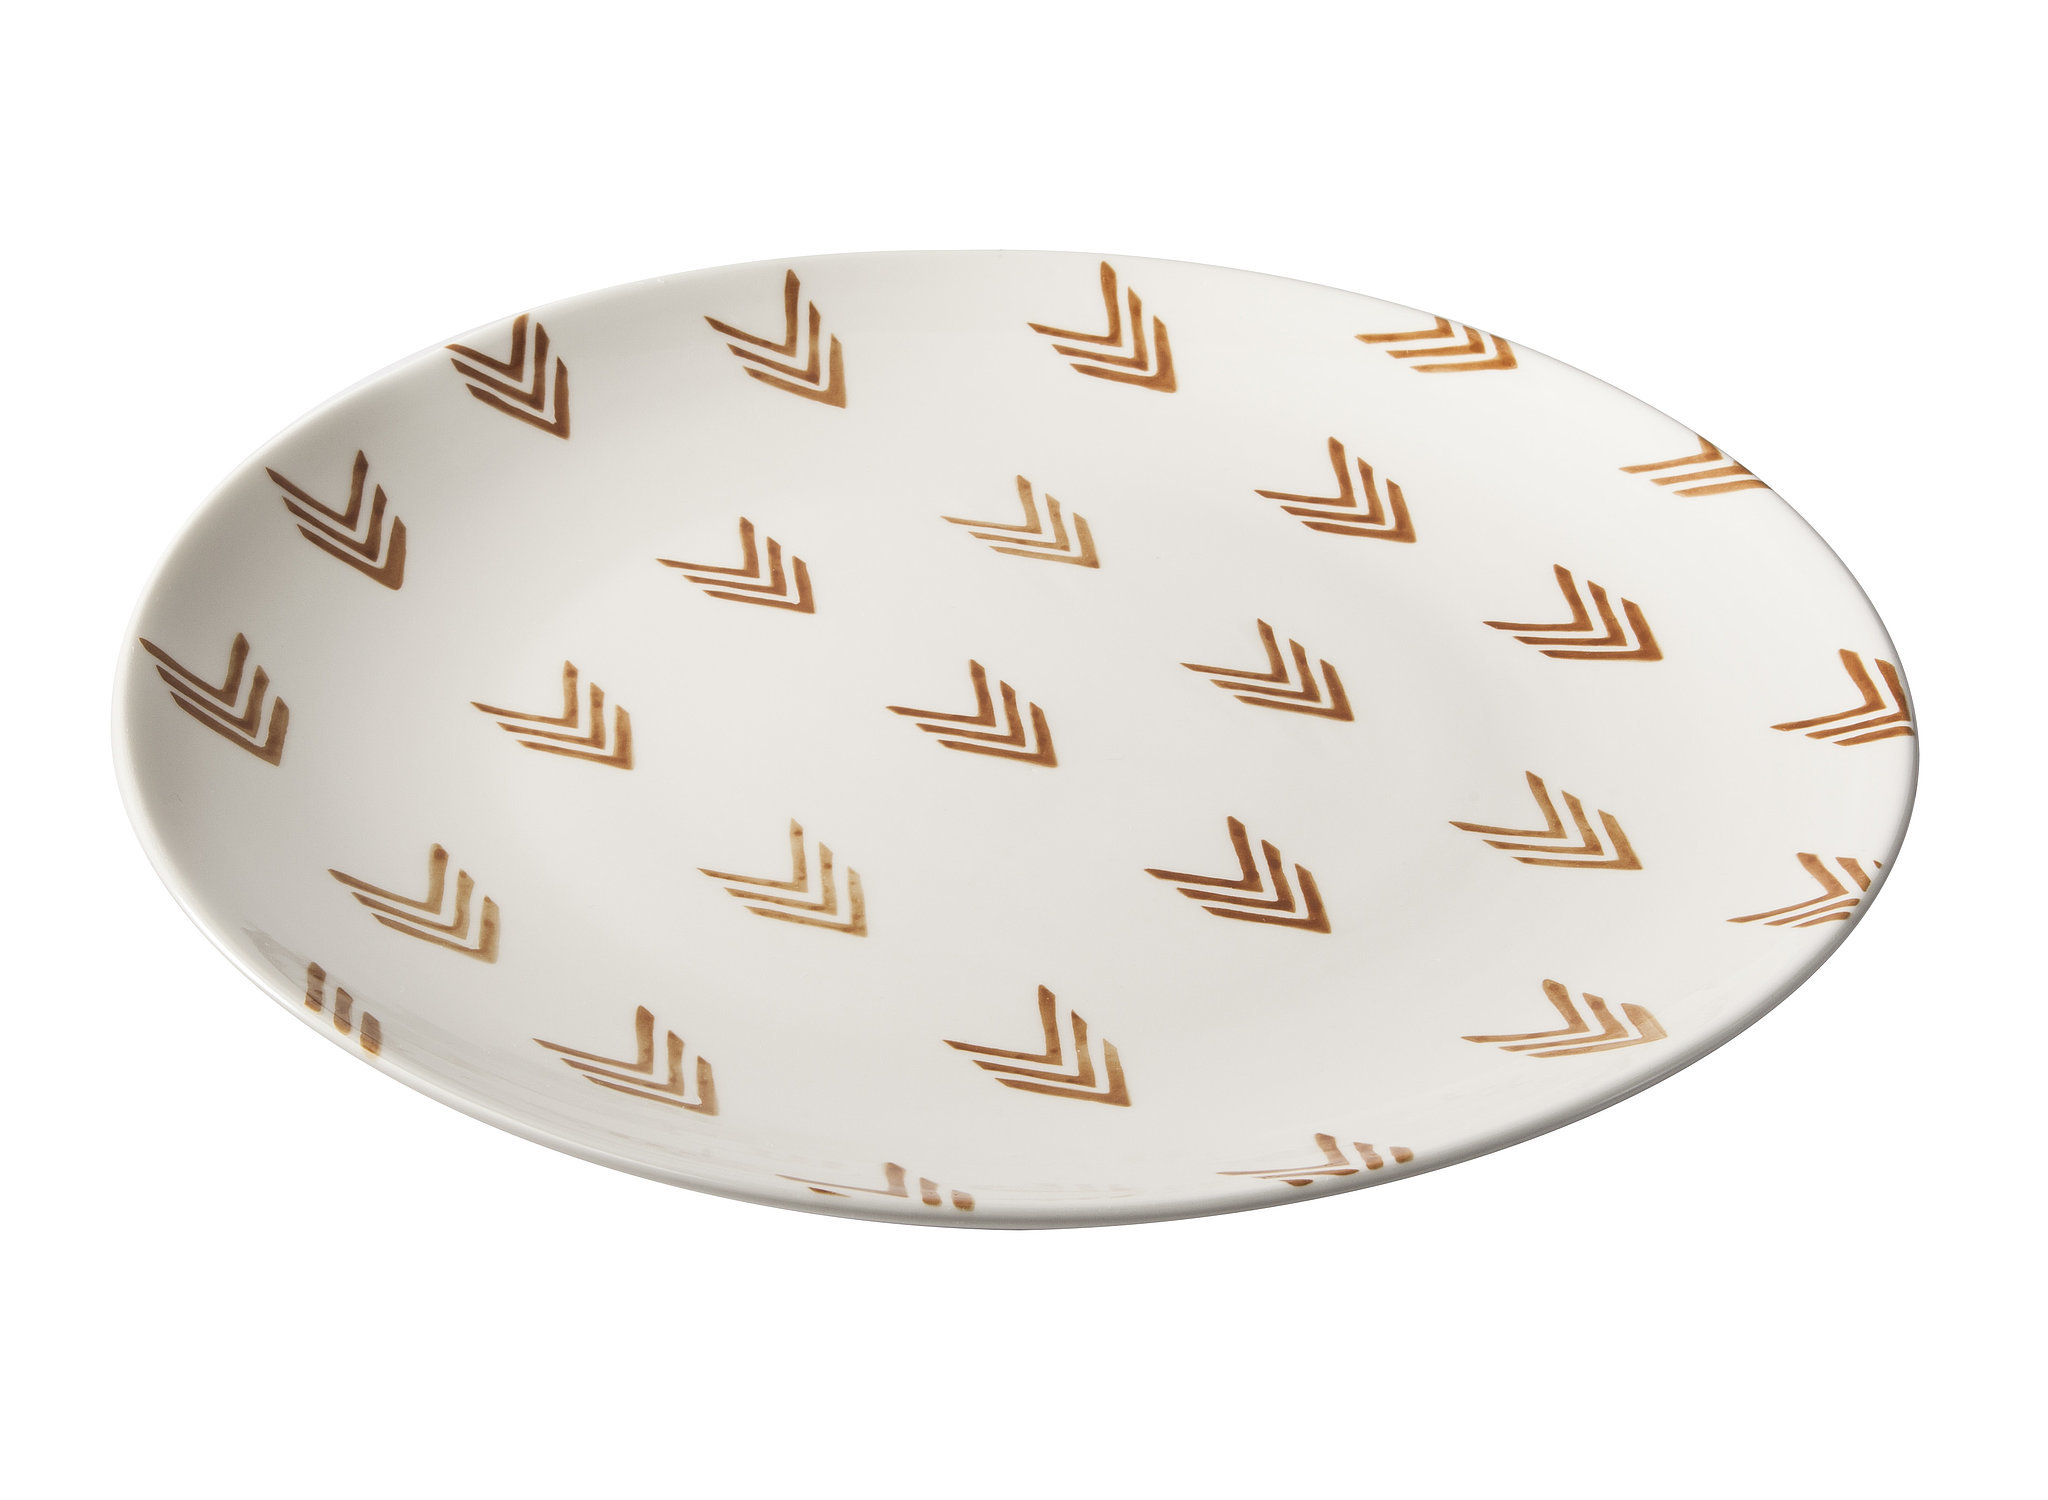 Patterned Ceramic Tray ($25)